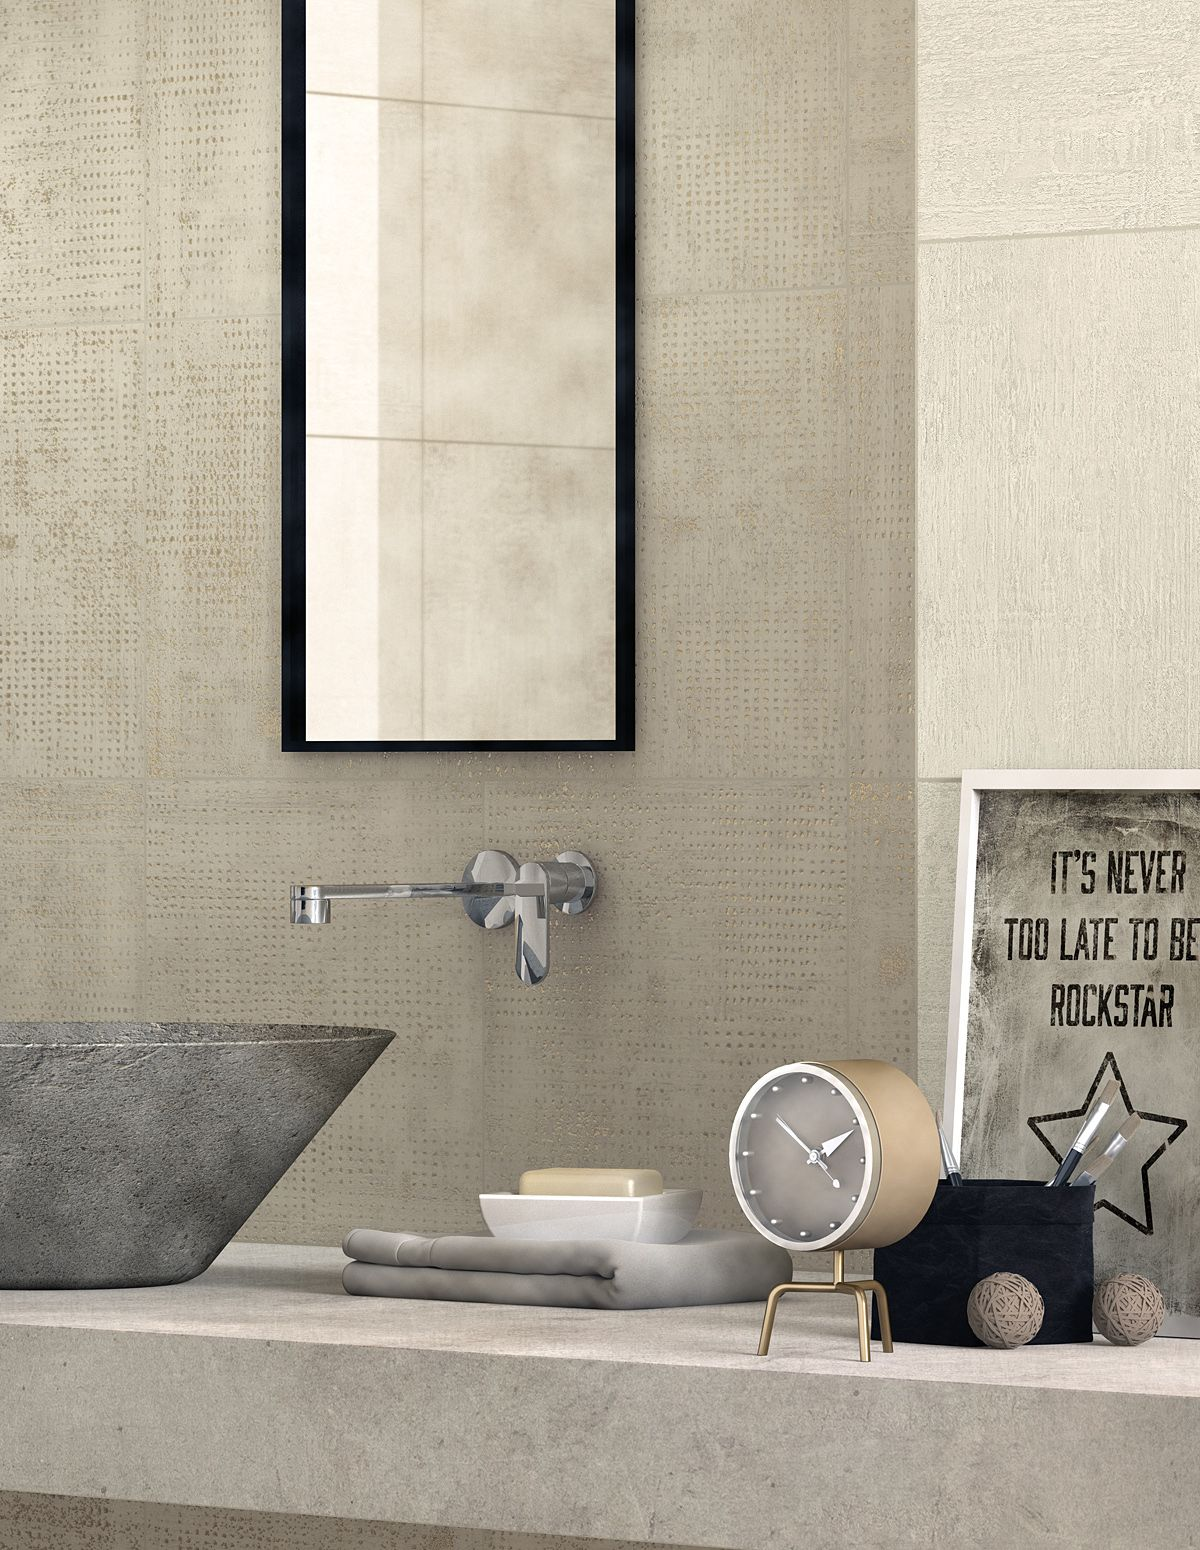 Decorative Wall Tiles For Bathroom Our Handmade Series Wall Tile In A Slick Modern Bathroom